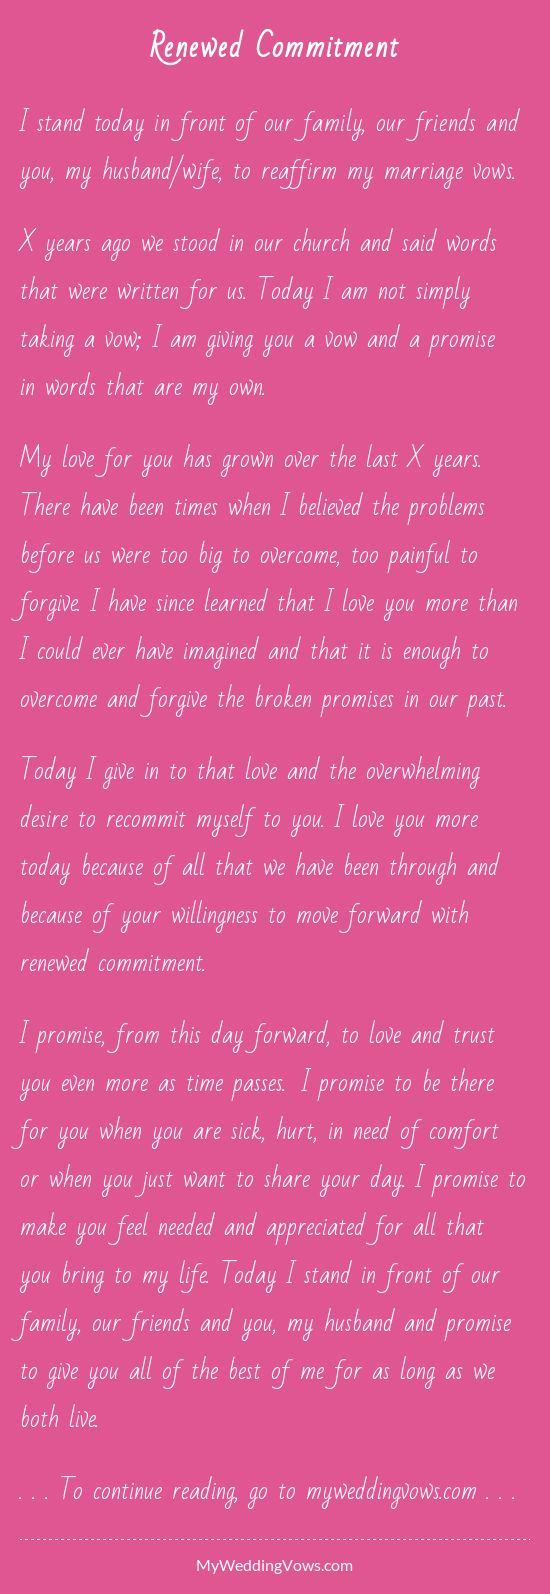 I stand today in front of our family, our friends and you, my husband/wife, to reaffirm my marriage vows. X years ago we stood in our church and said words that were written for us. Today I am not simply taking a vow; I am giving you a vow and a...